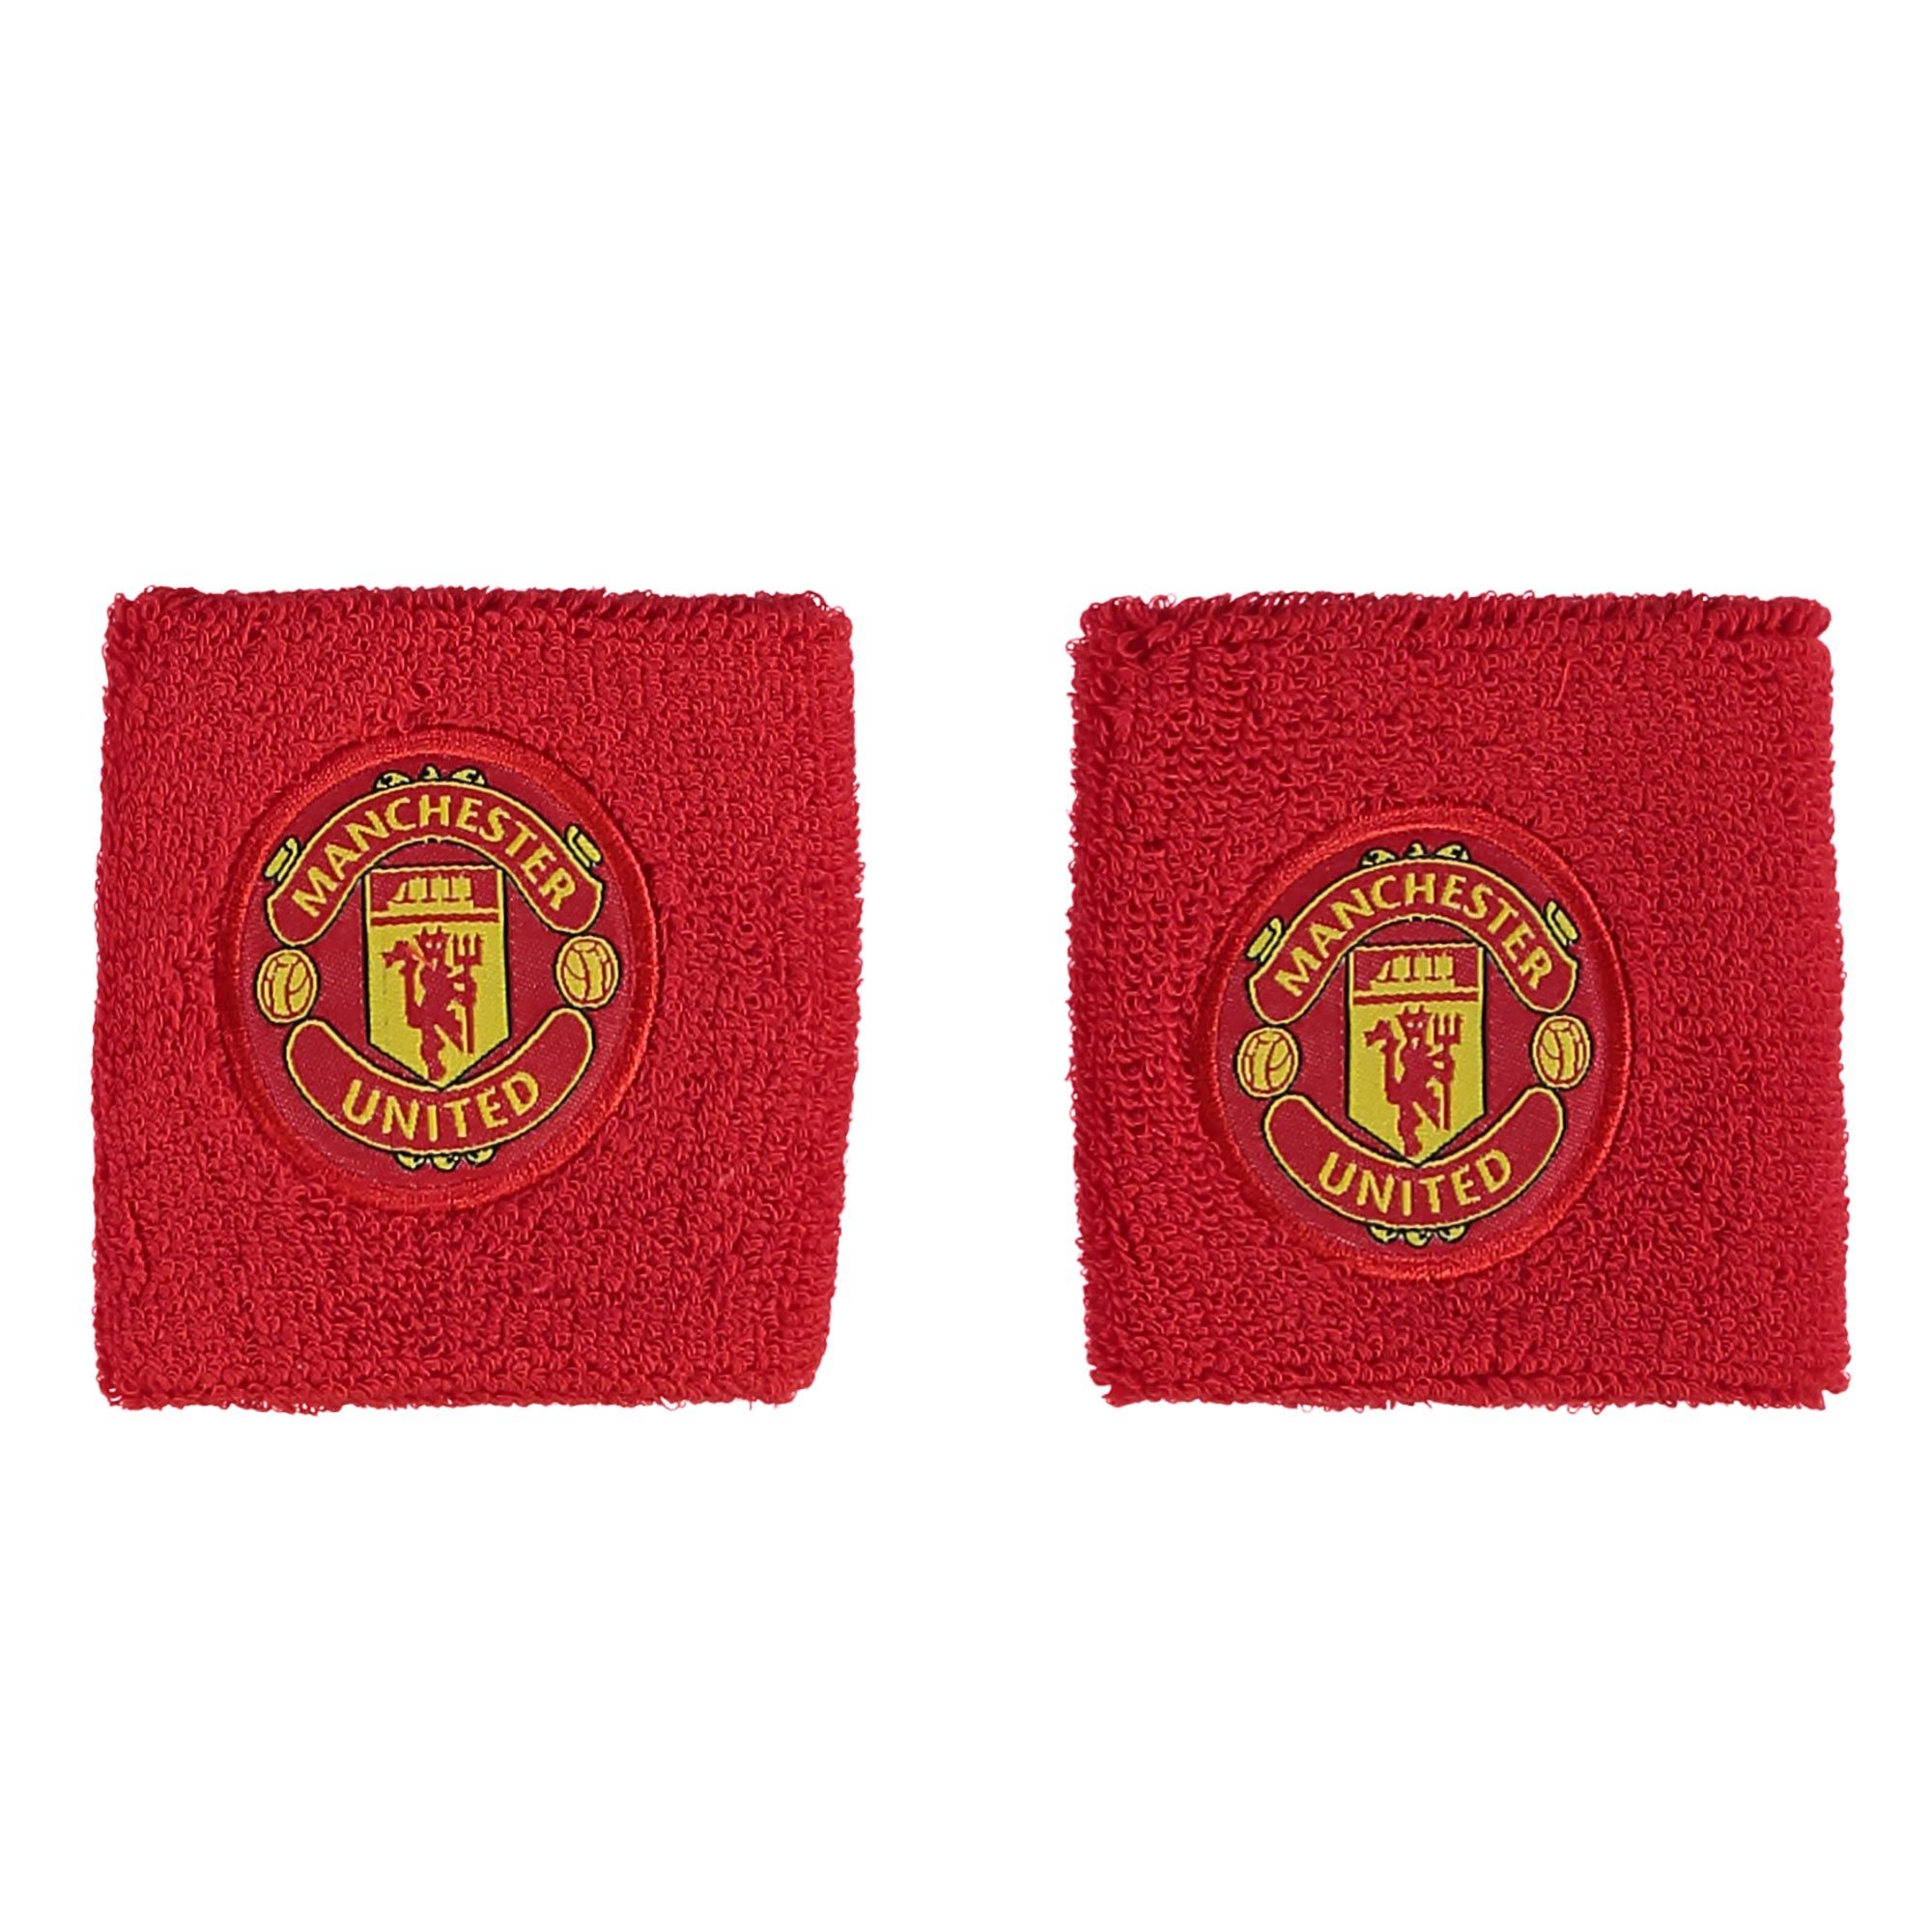 Manchester United Crest Wristbands